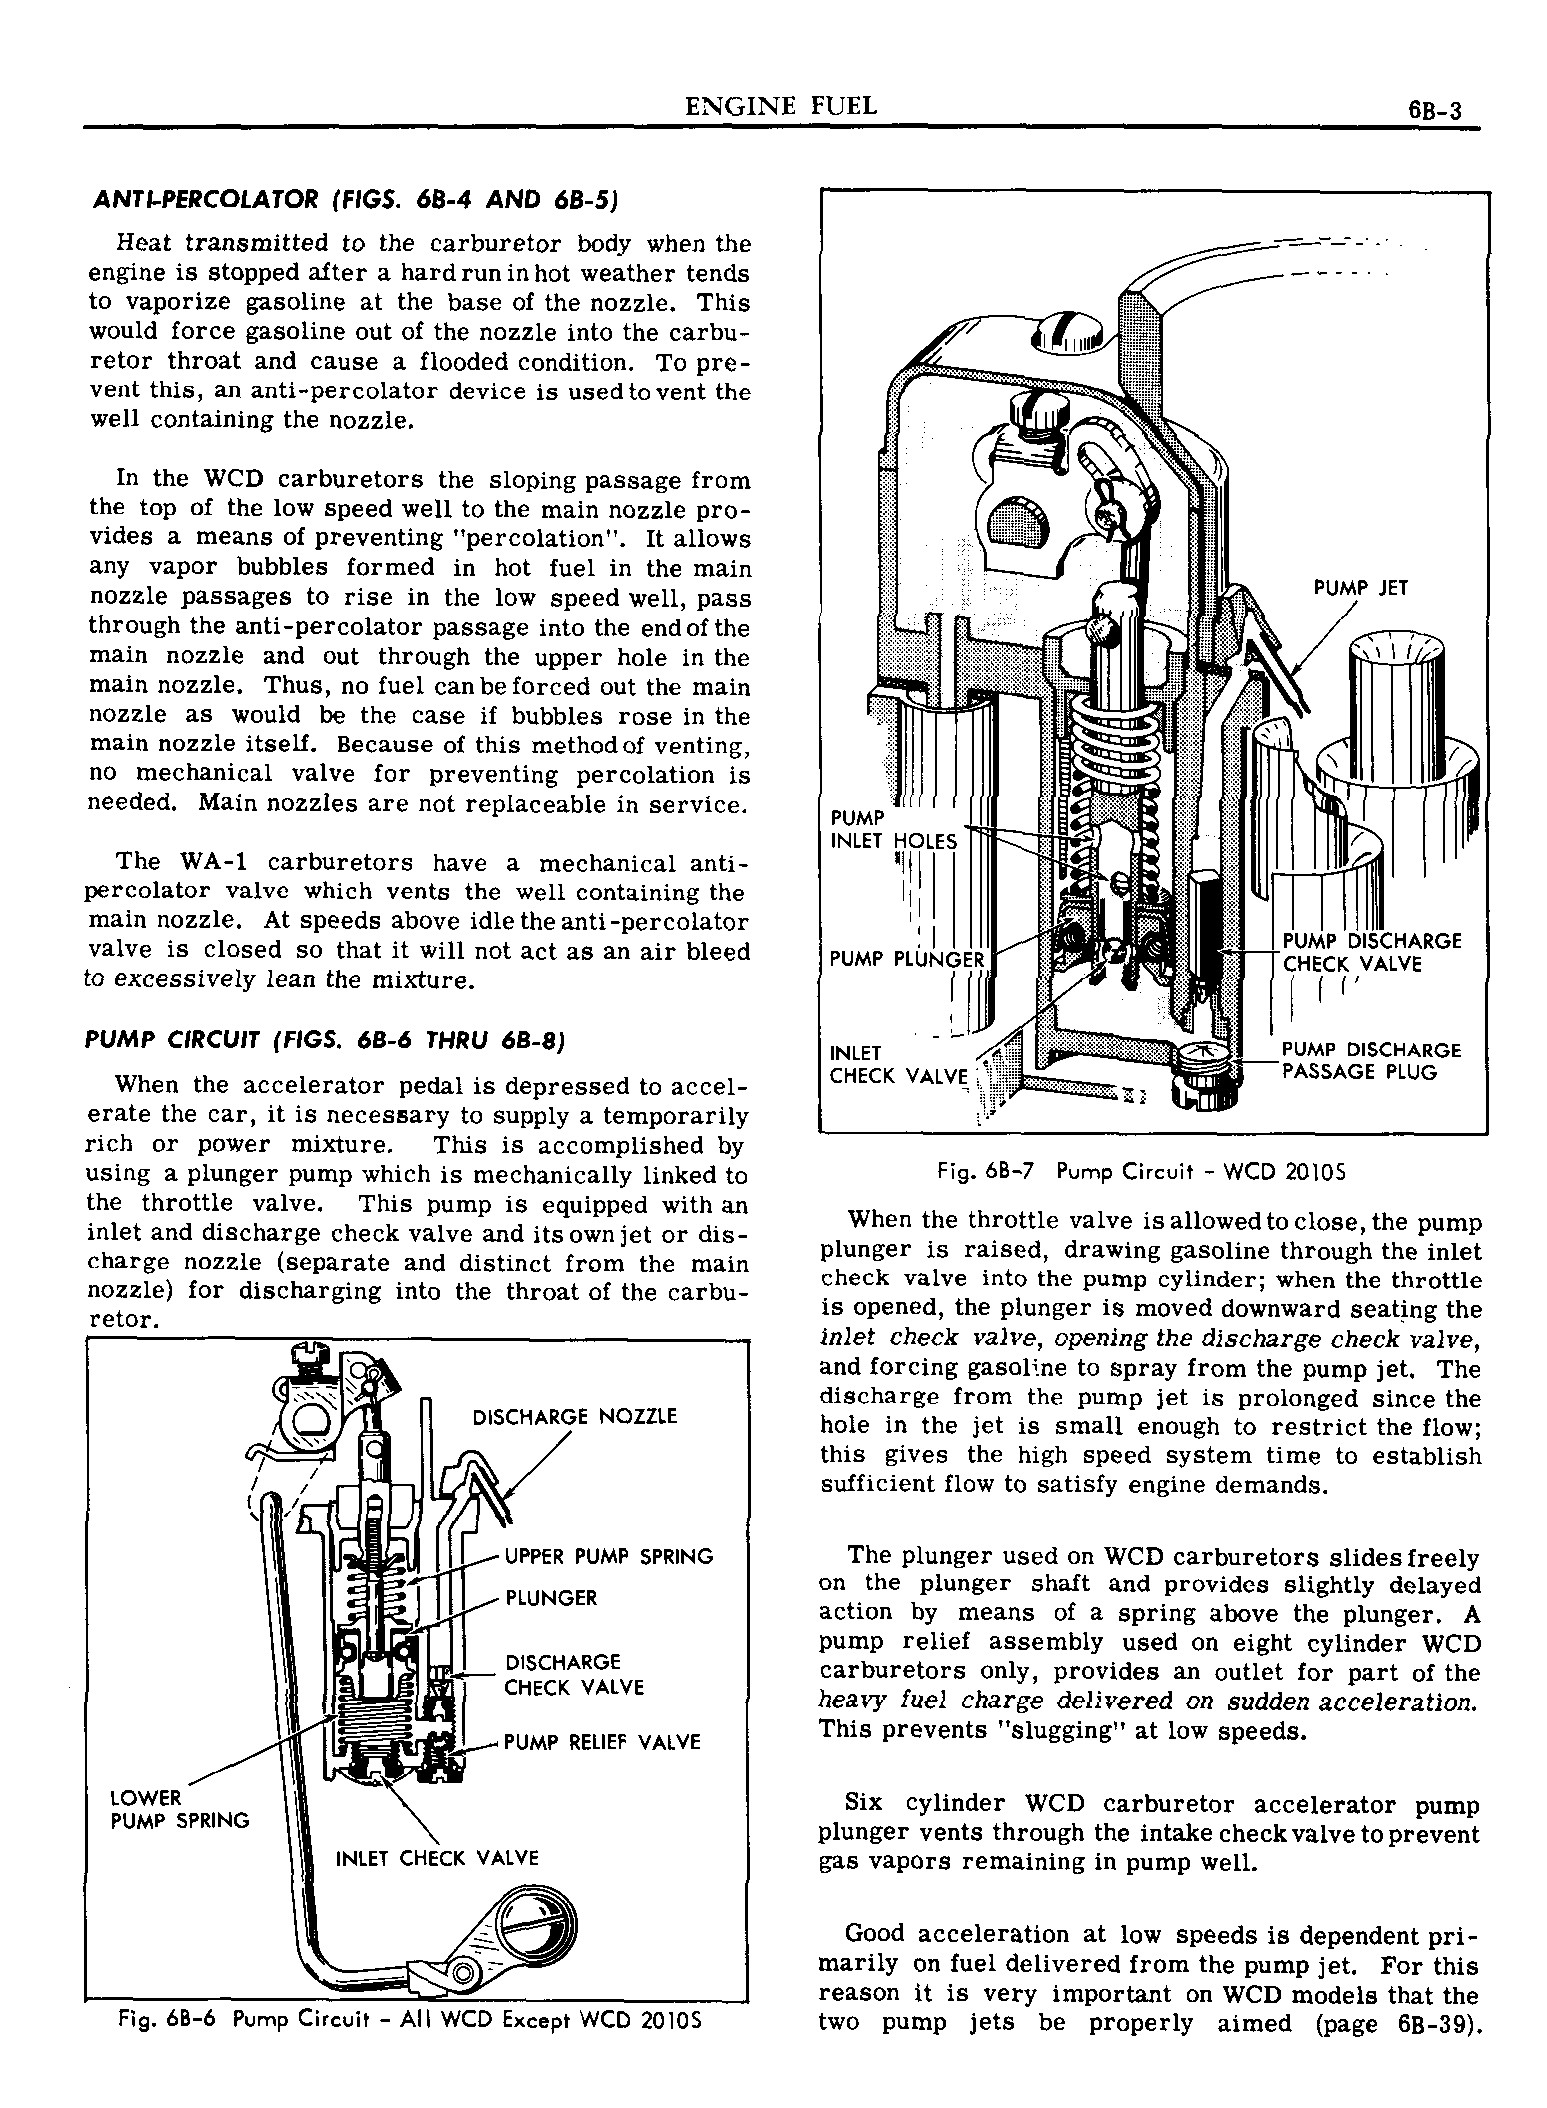 1949 Pontiac Shop Manual- Engine Fuel Page 3 of 42